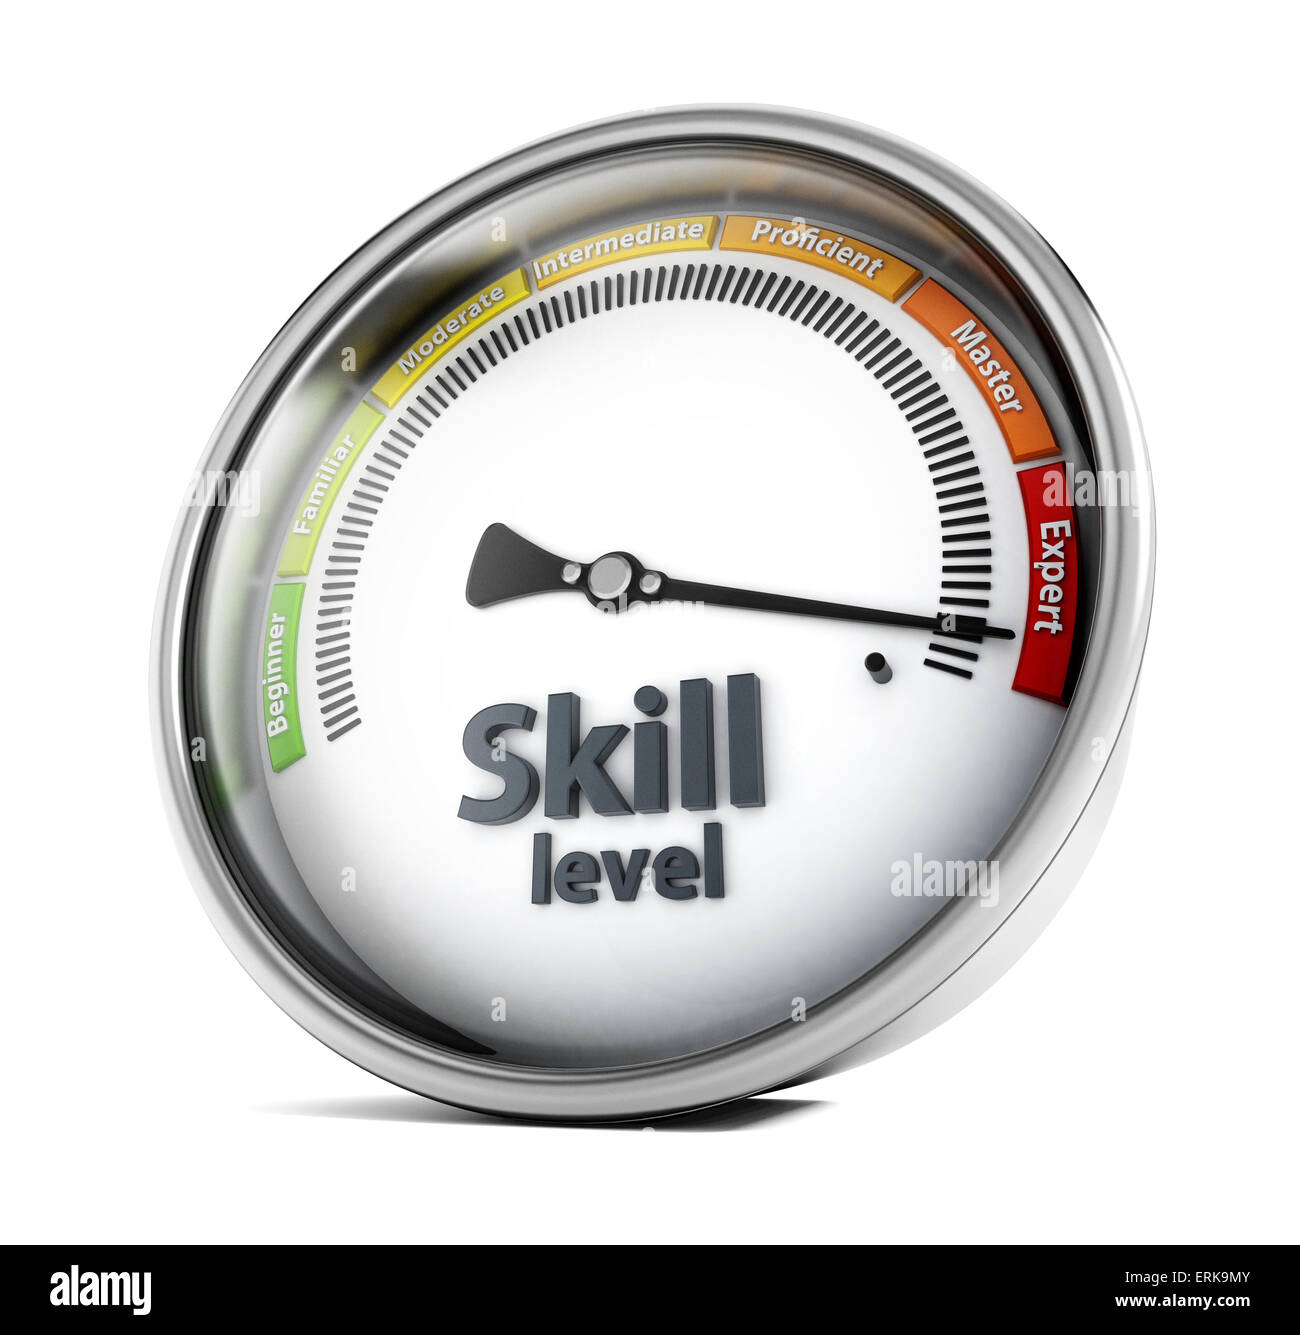 Skill level meter representing between beginner and expert skill levels. - Stock Image